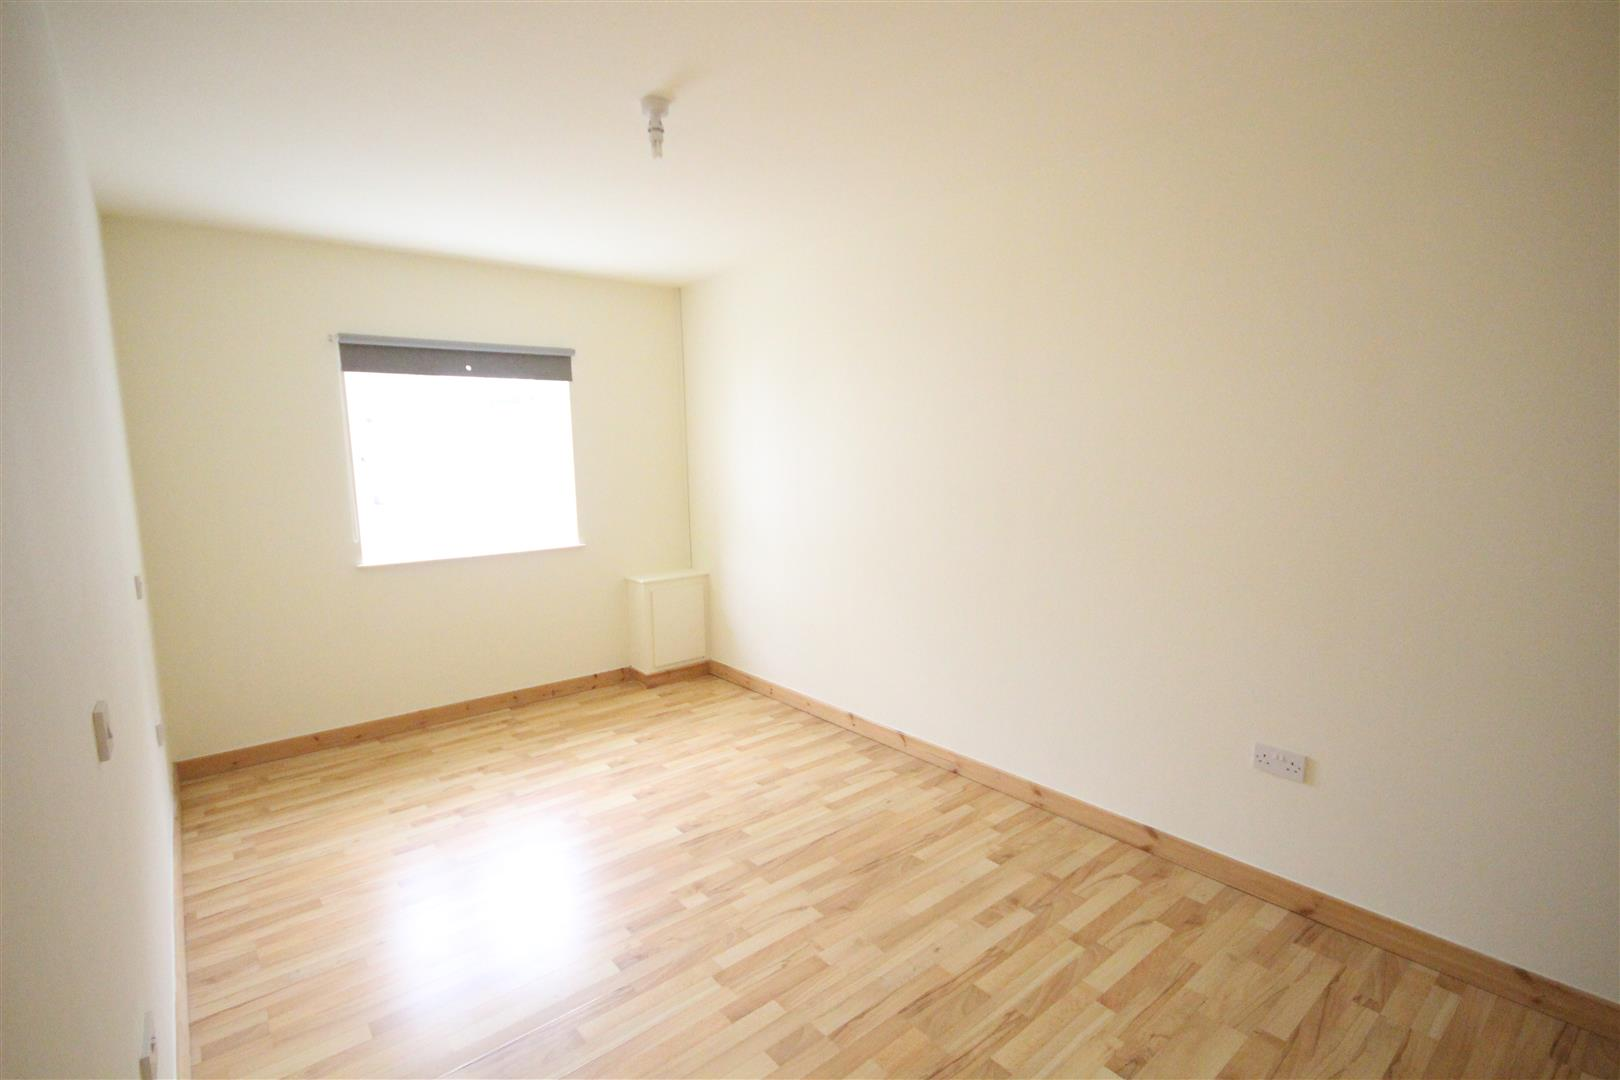 2 bedroom bungalow For Sale in Colne - IMG_0822.JPG